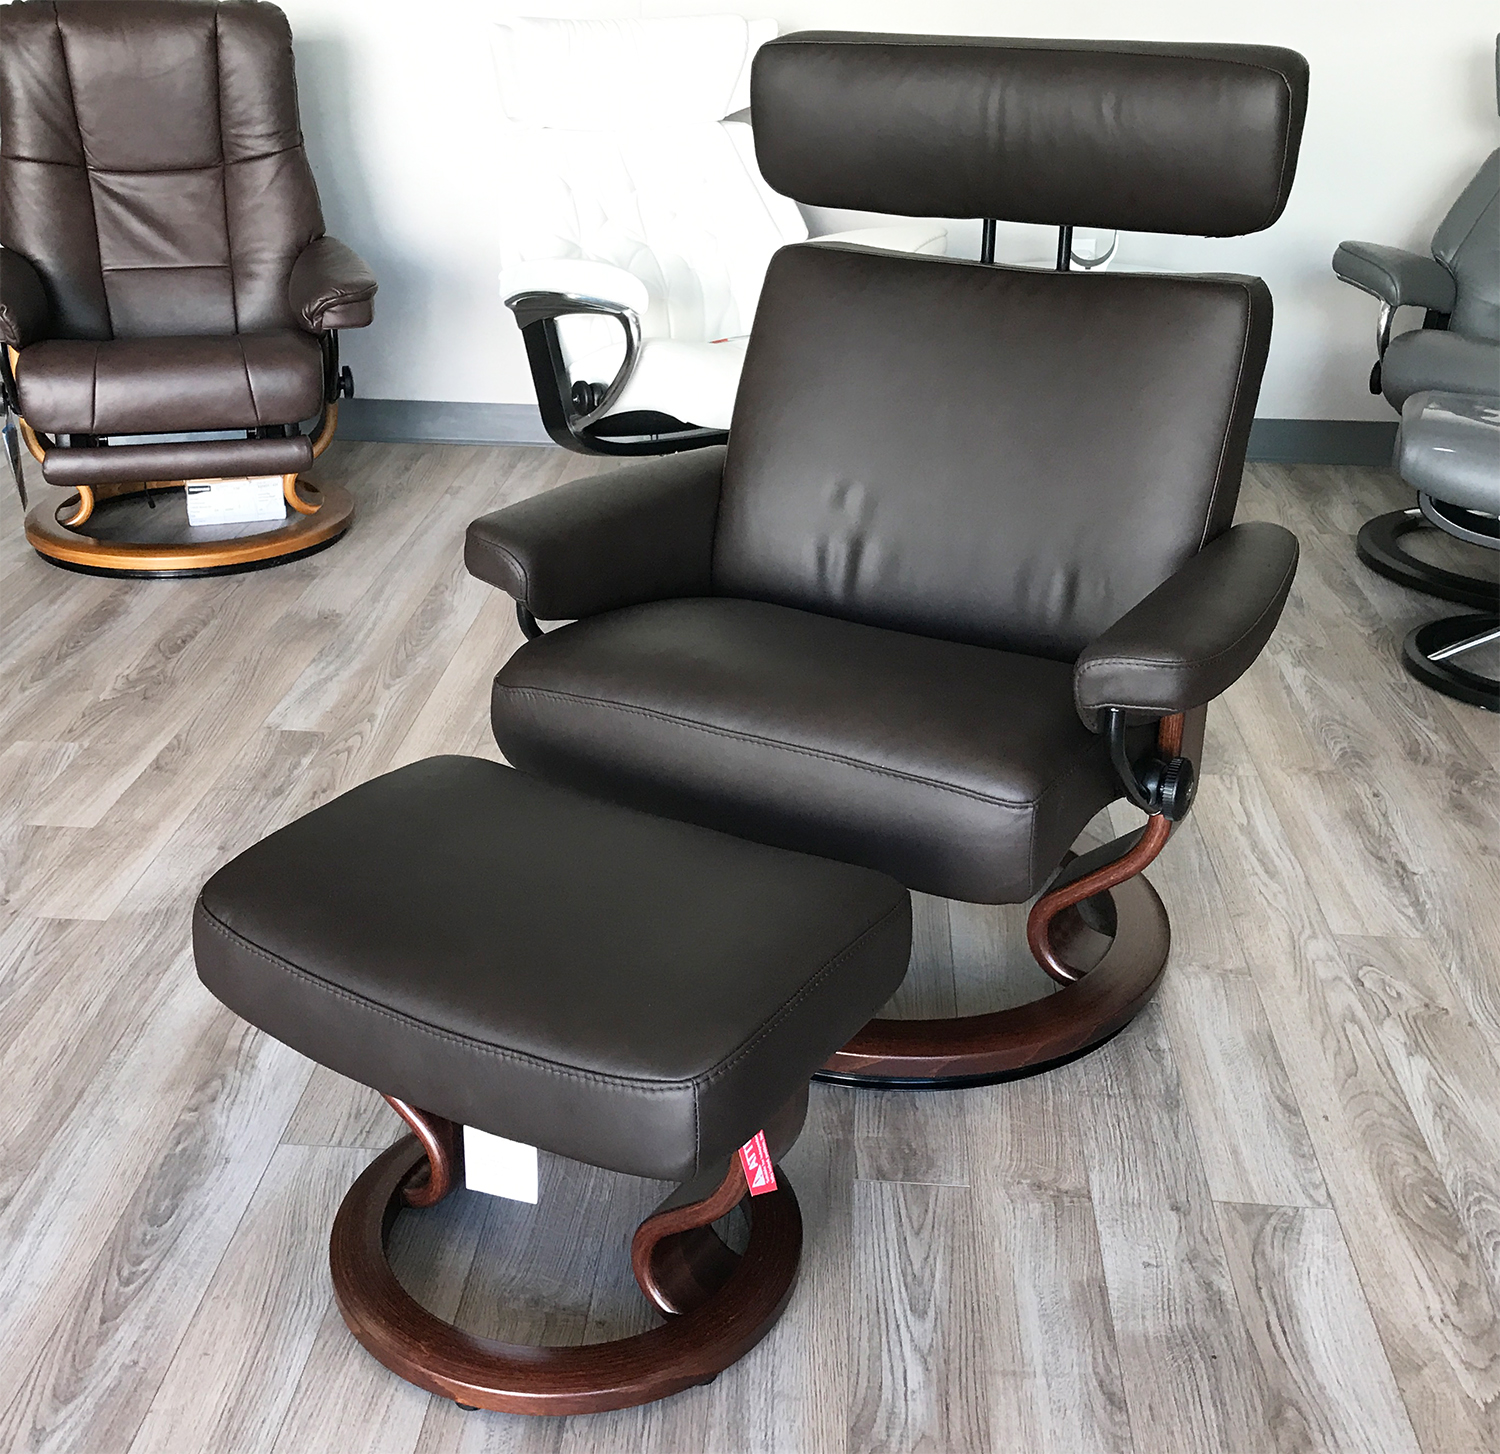 leather recliner chair zero gravity indoor stressless taurus paloma mocca and ottoman an error occurred